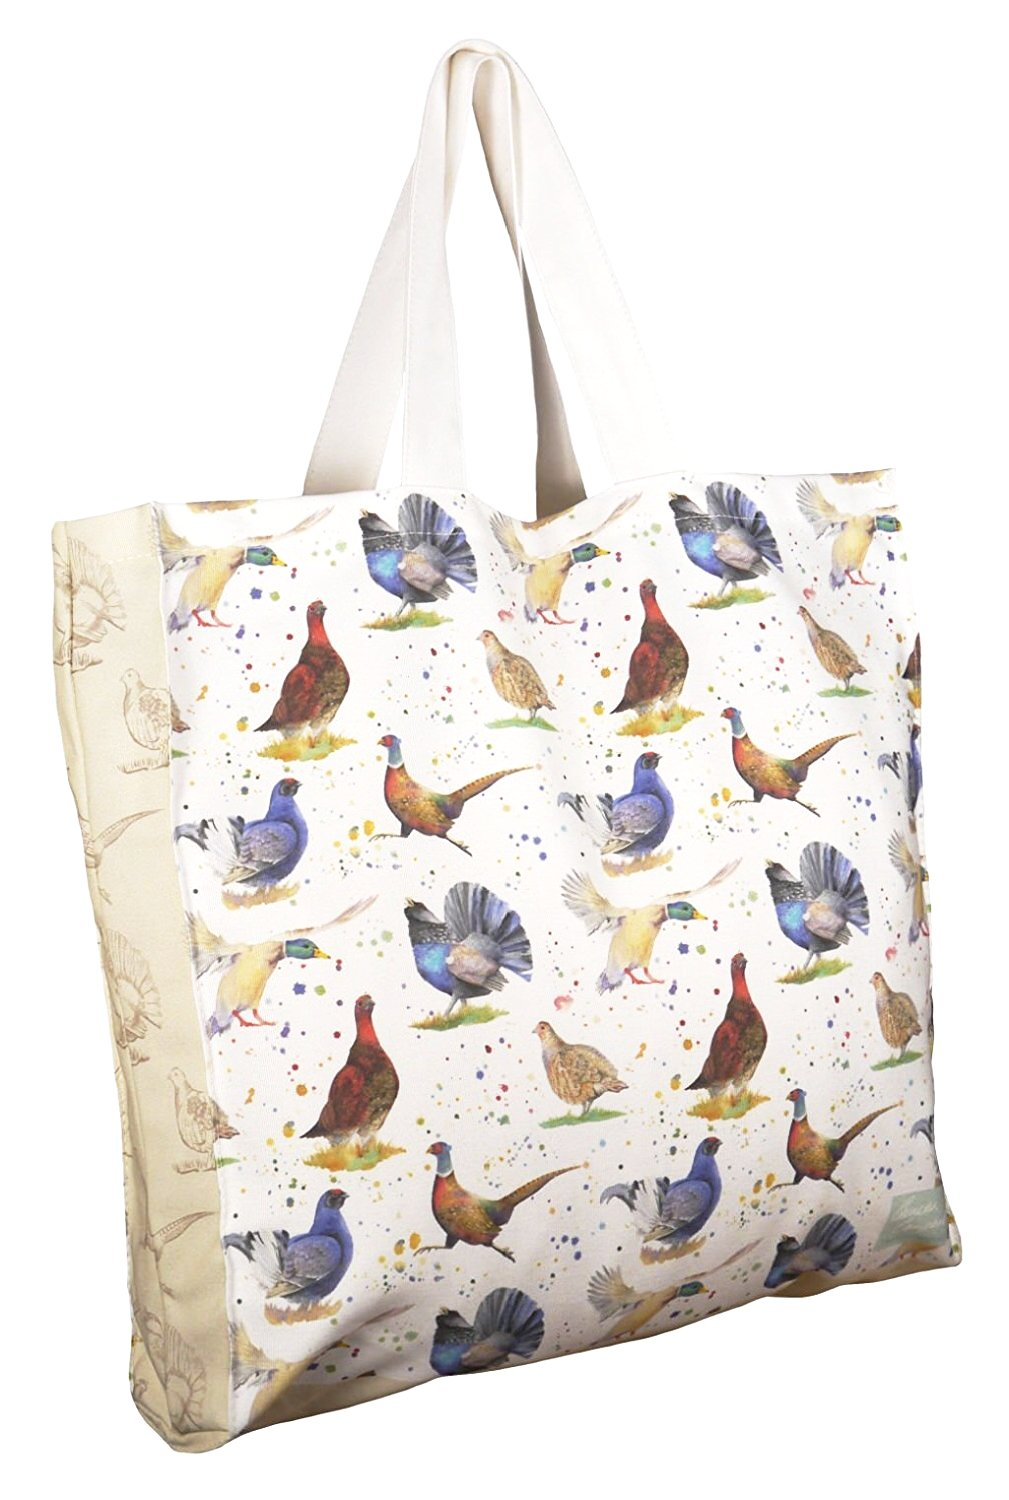 Pheasant capercaillie duck grouse tote shopping bag Ceinwen Campbell The Arty Penguin